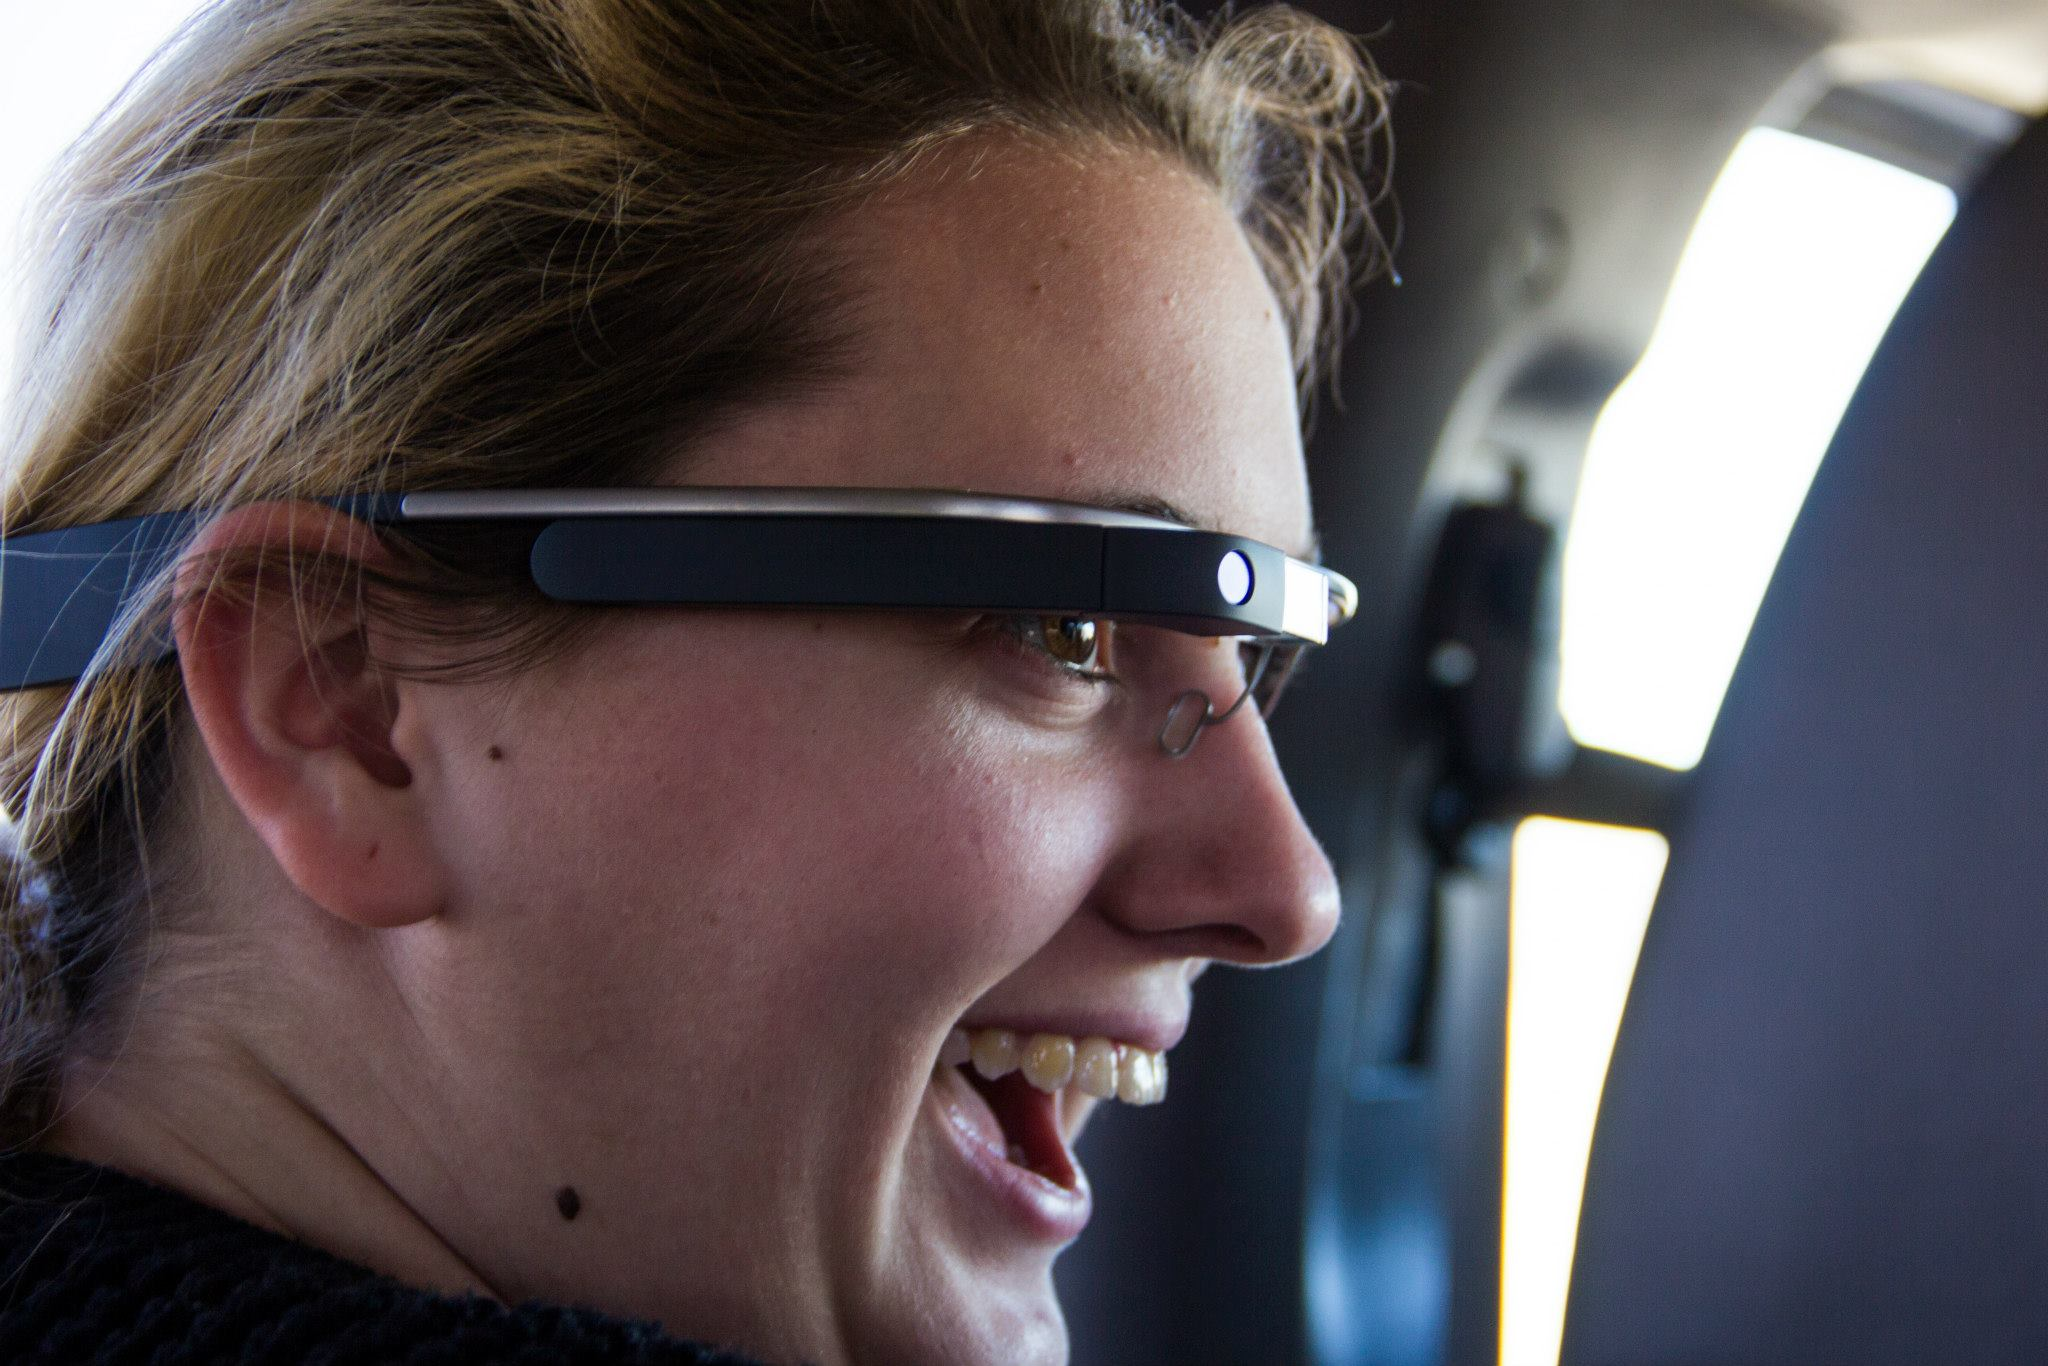 An OWU student on a Spring Break Mission Trip delighted with Google Glass.